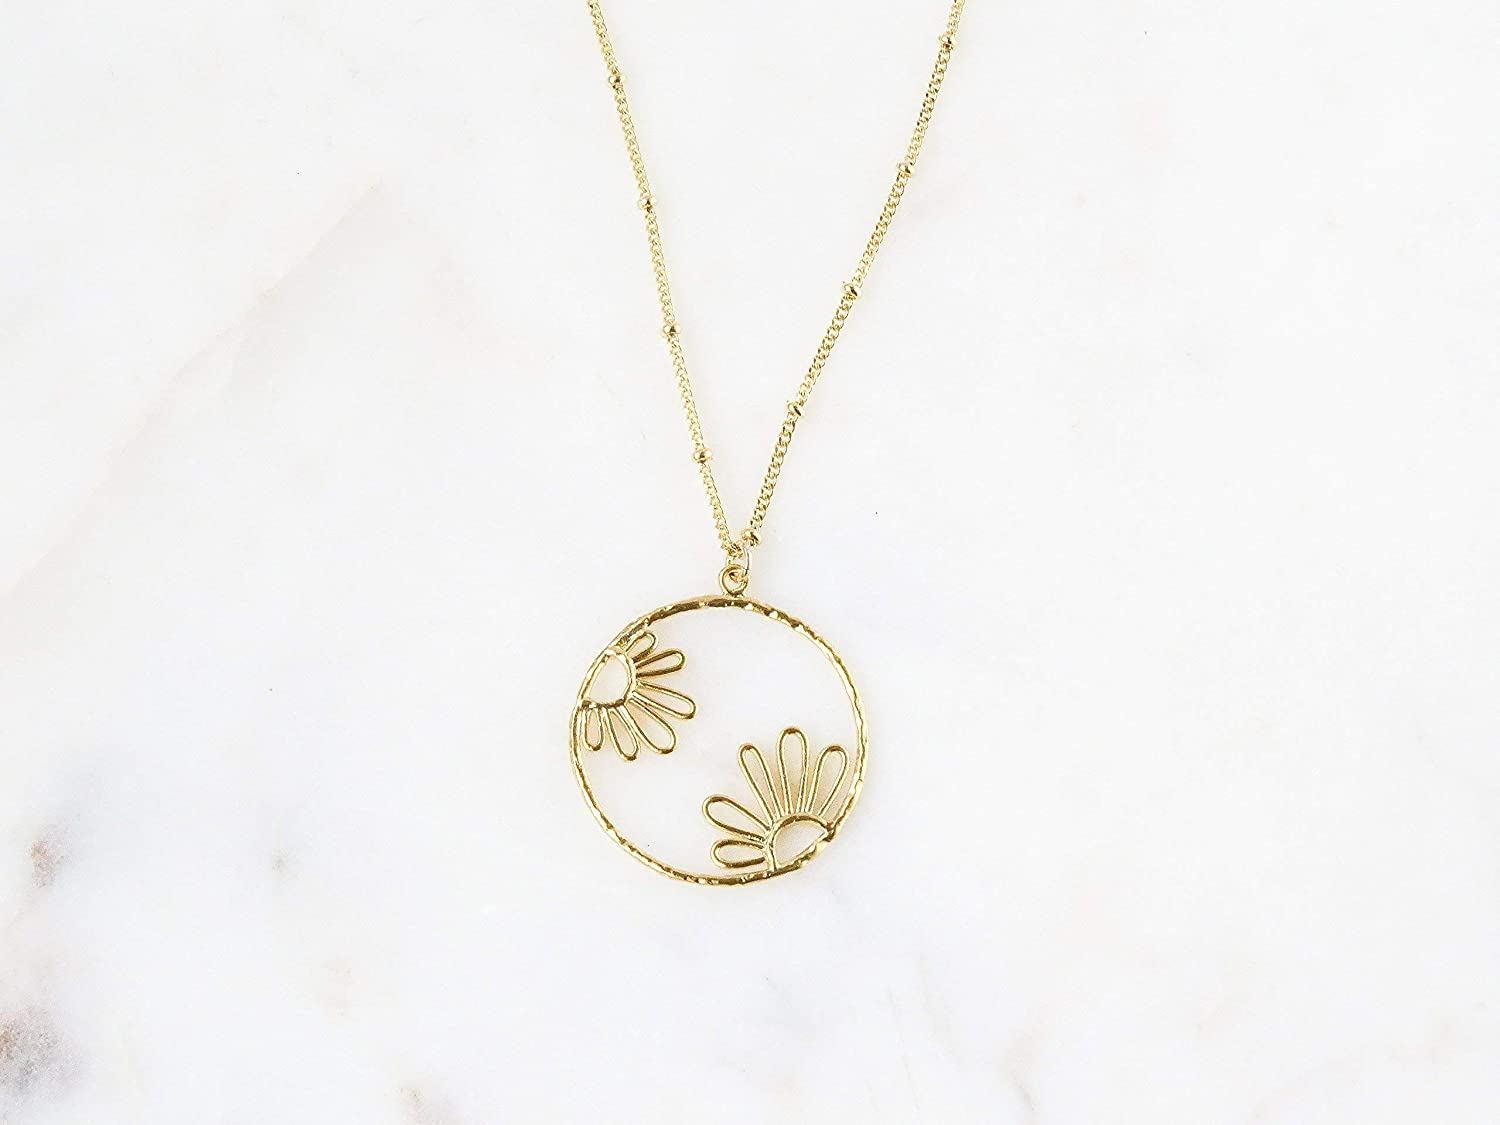 Daisy Flower Floral Charm Pendant Necklace Gift for Women Gold-Plated 20